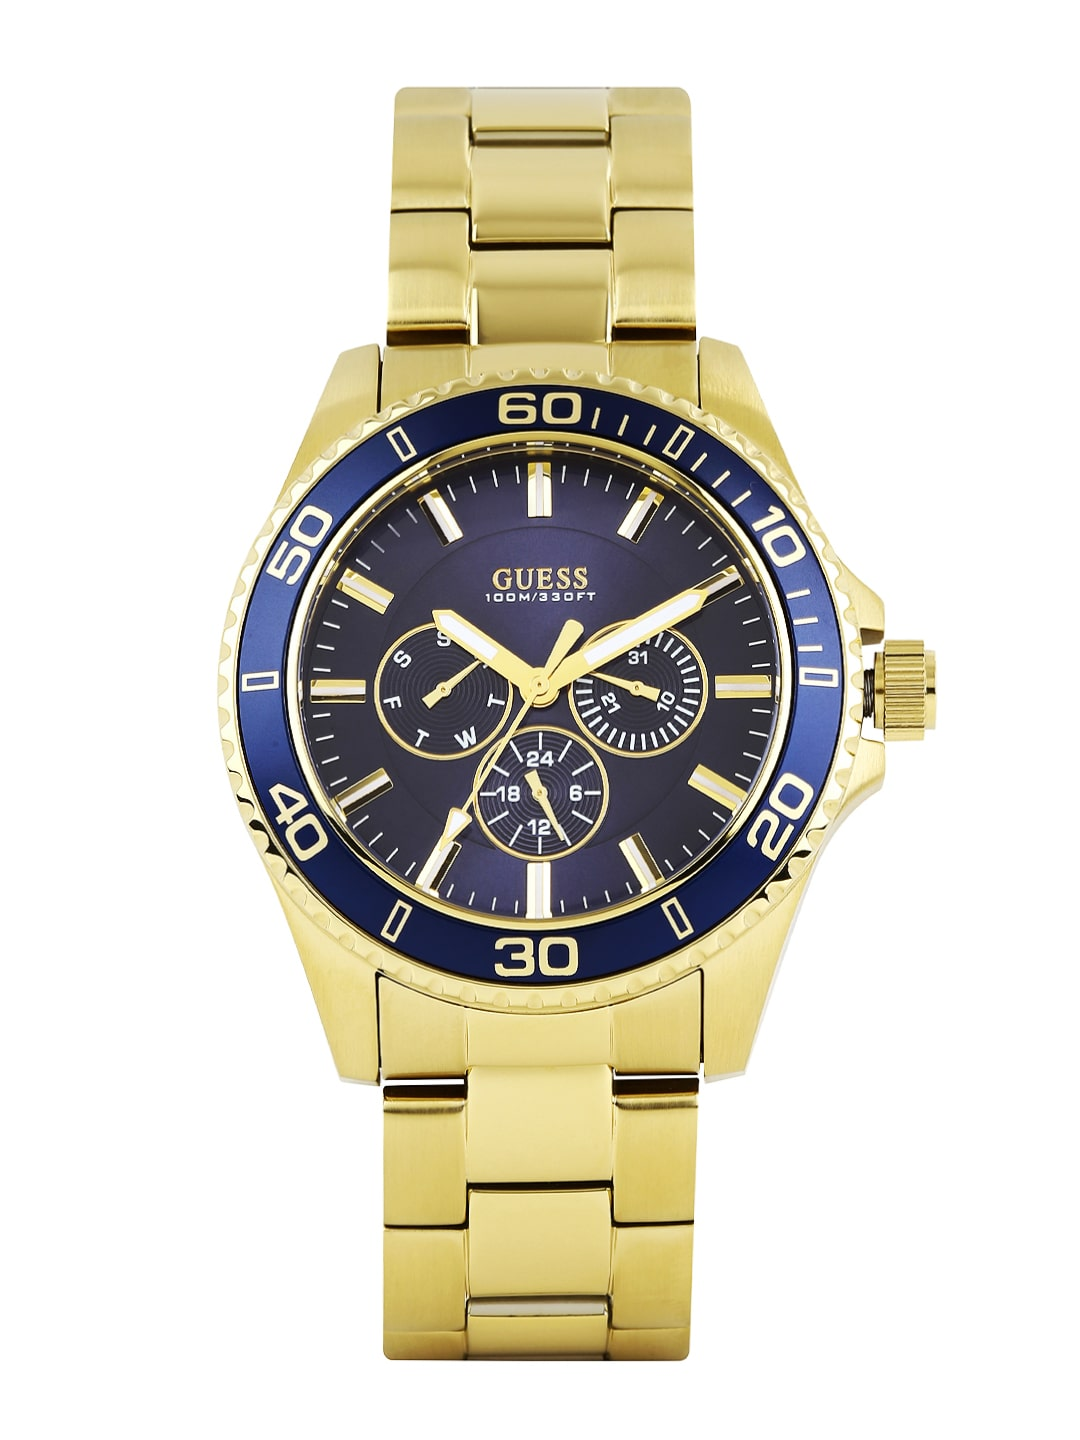 Guess w0172g5-gold Men Navy Dial Watch W0172g5 - Best Price in ... 9c48c9131891